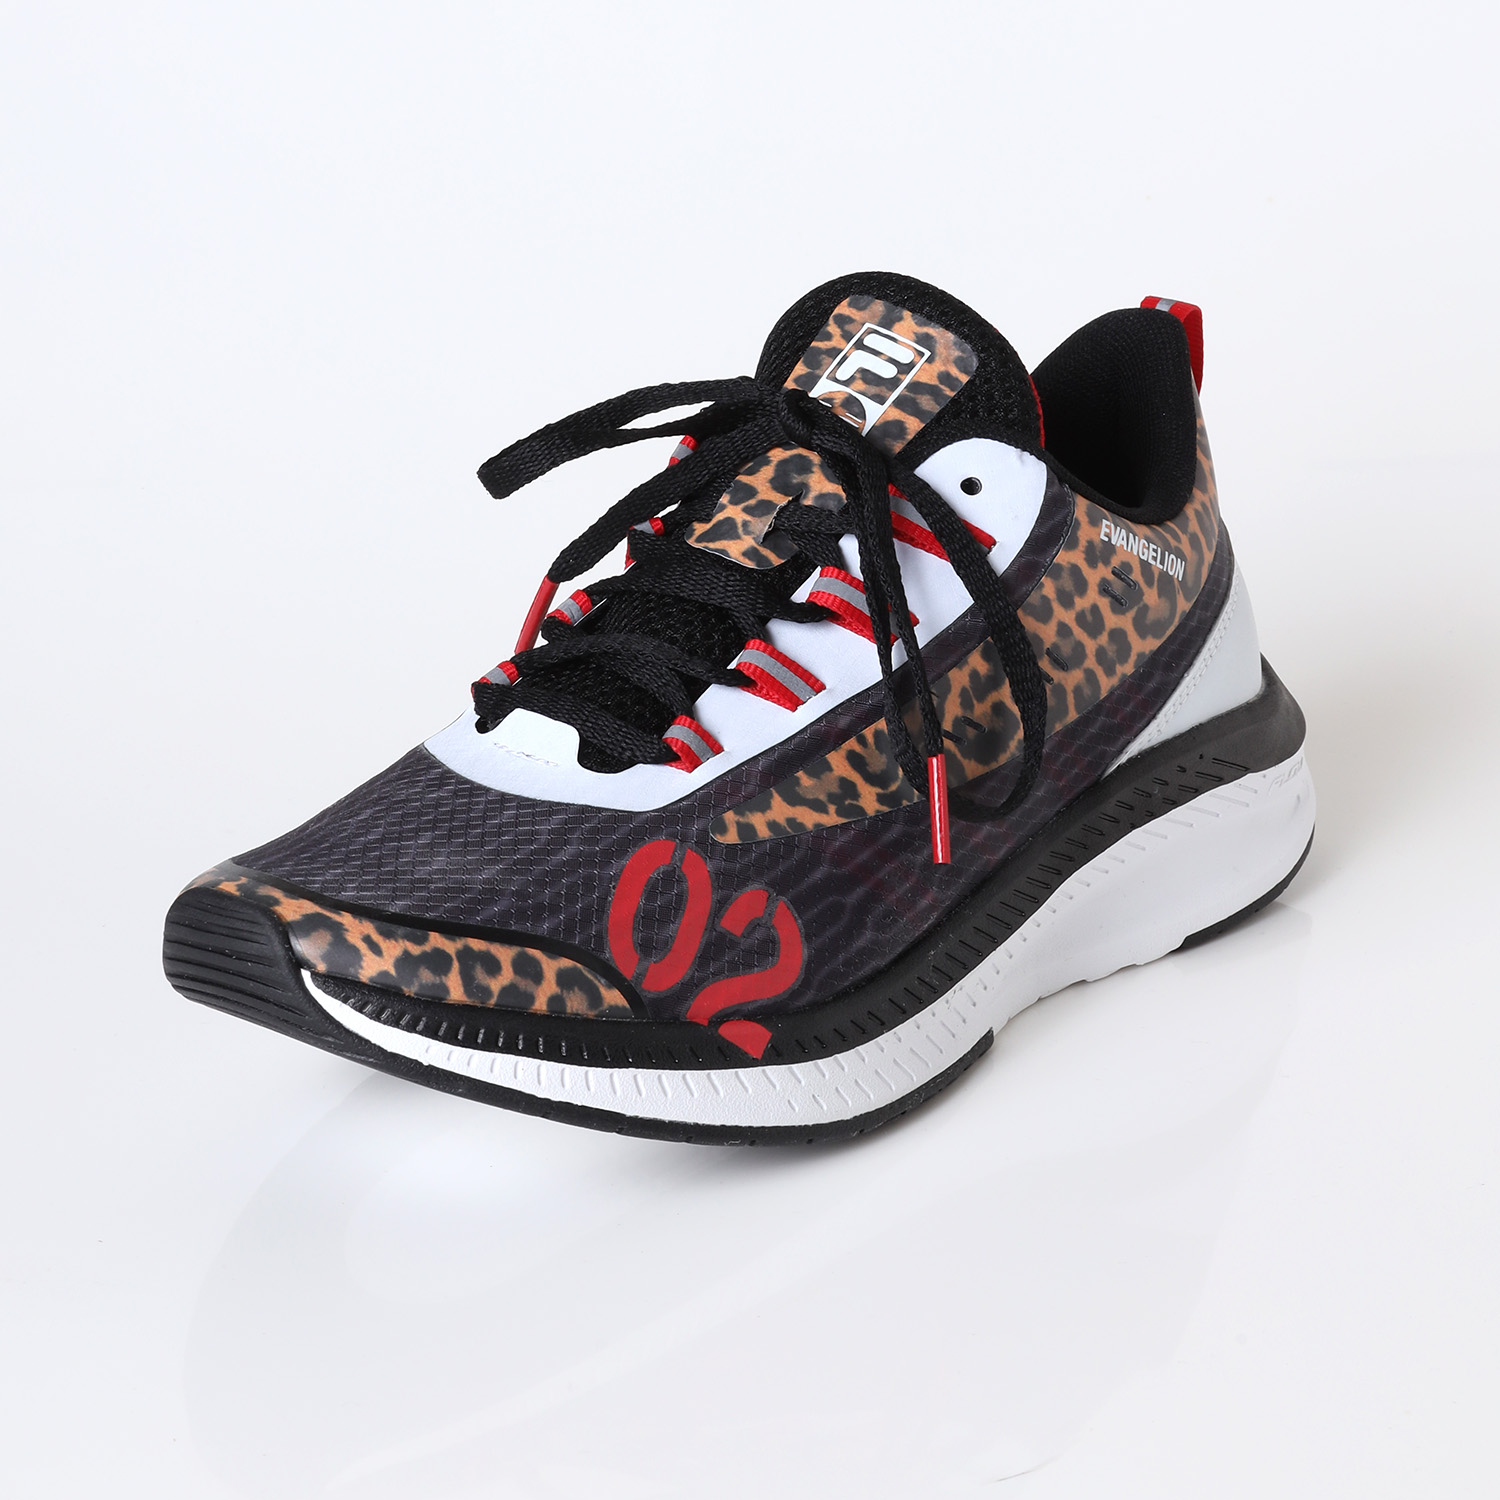 FILA WAVELET ALPHA EVANGELION LIMITED (LEOPARD(EVA-02 THE EBAST))